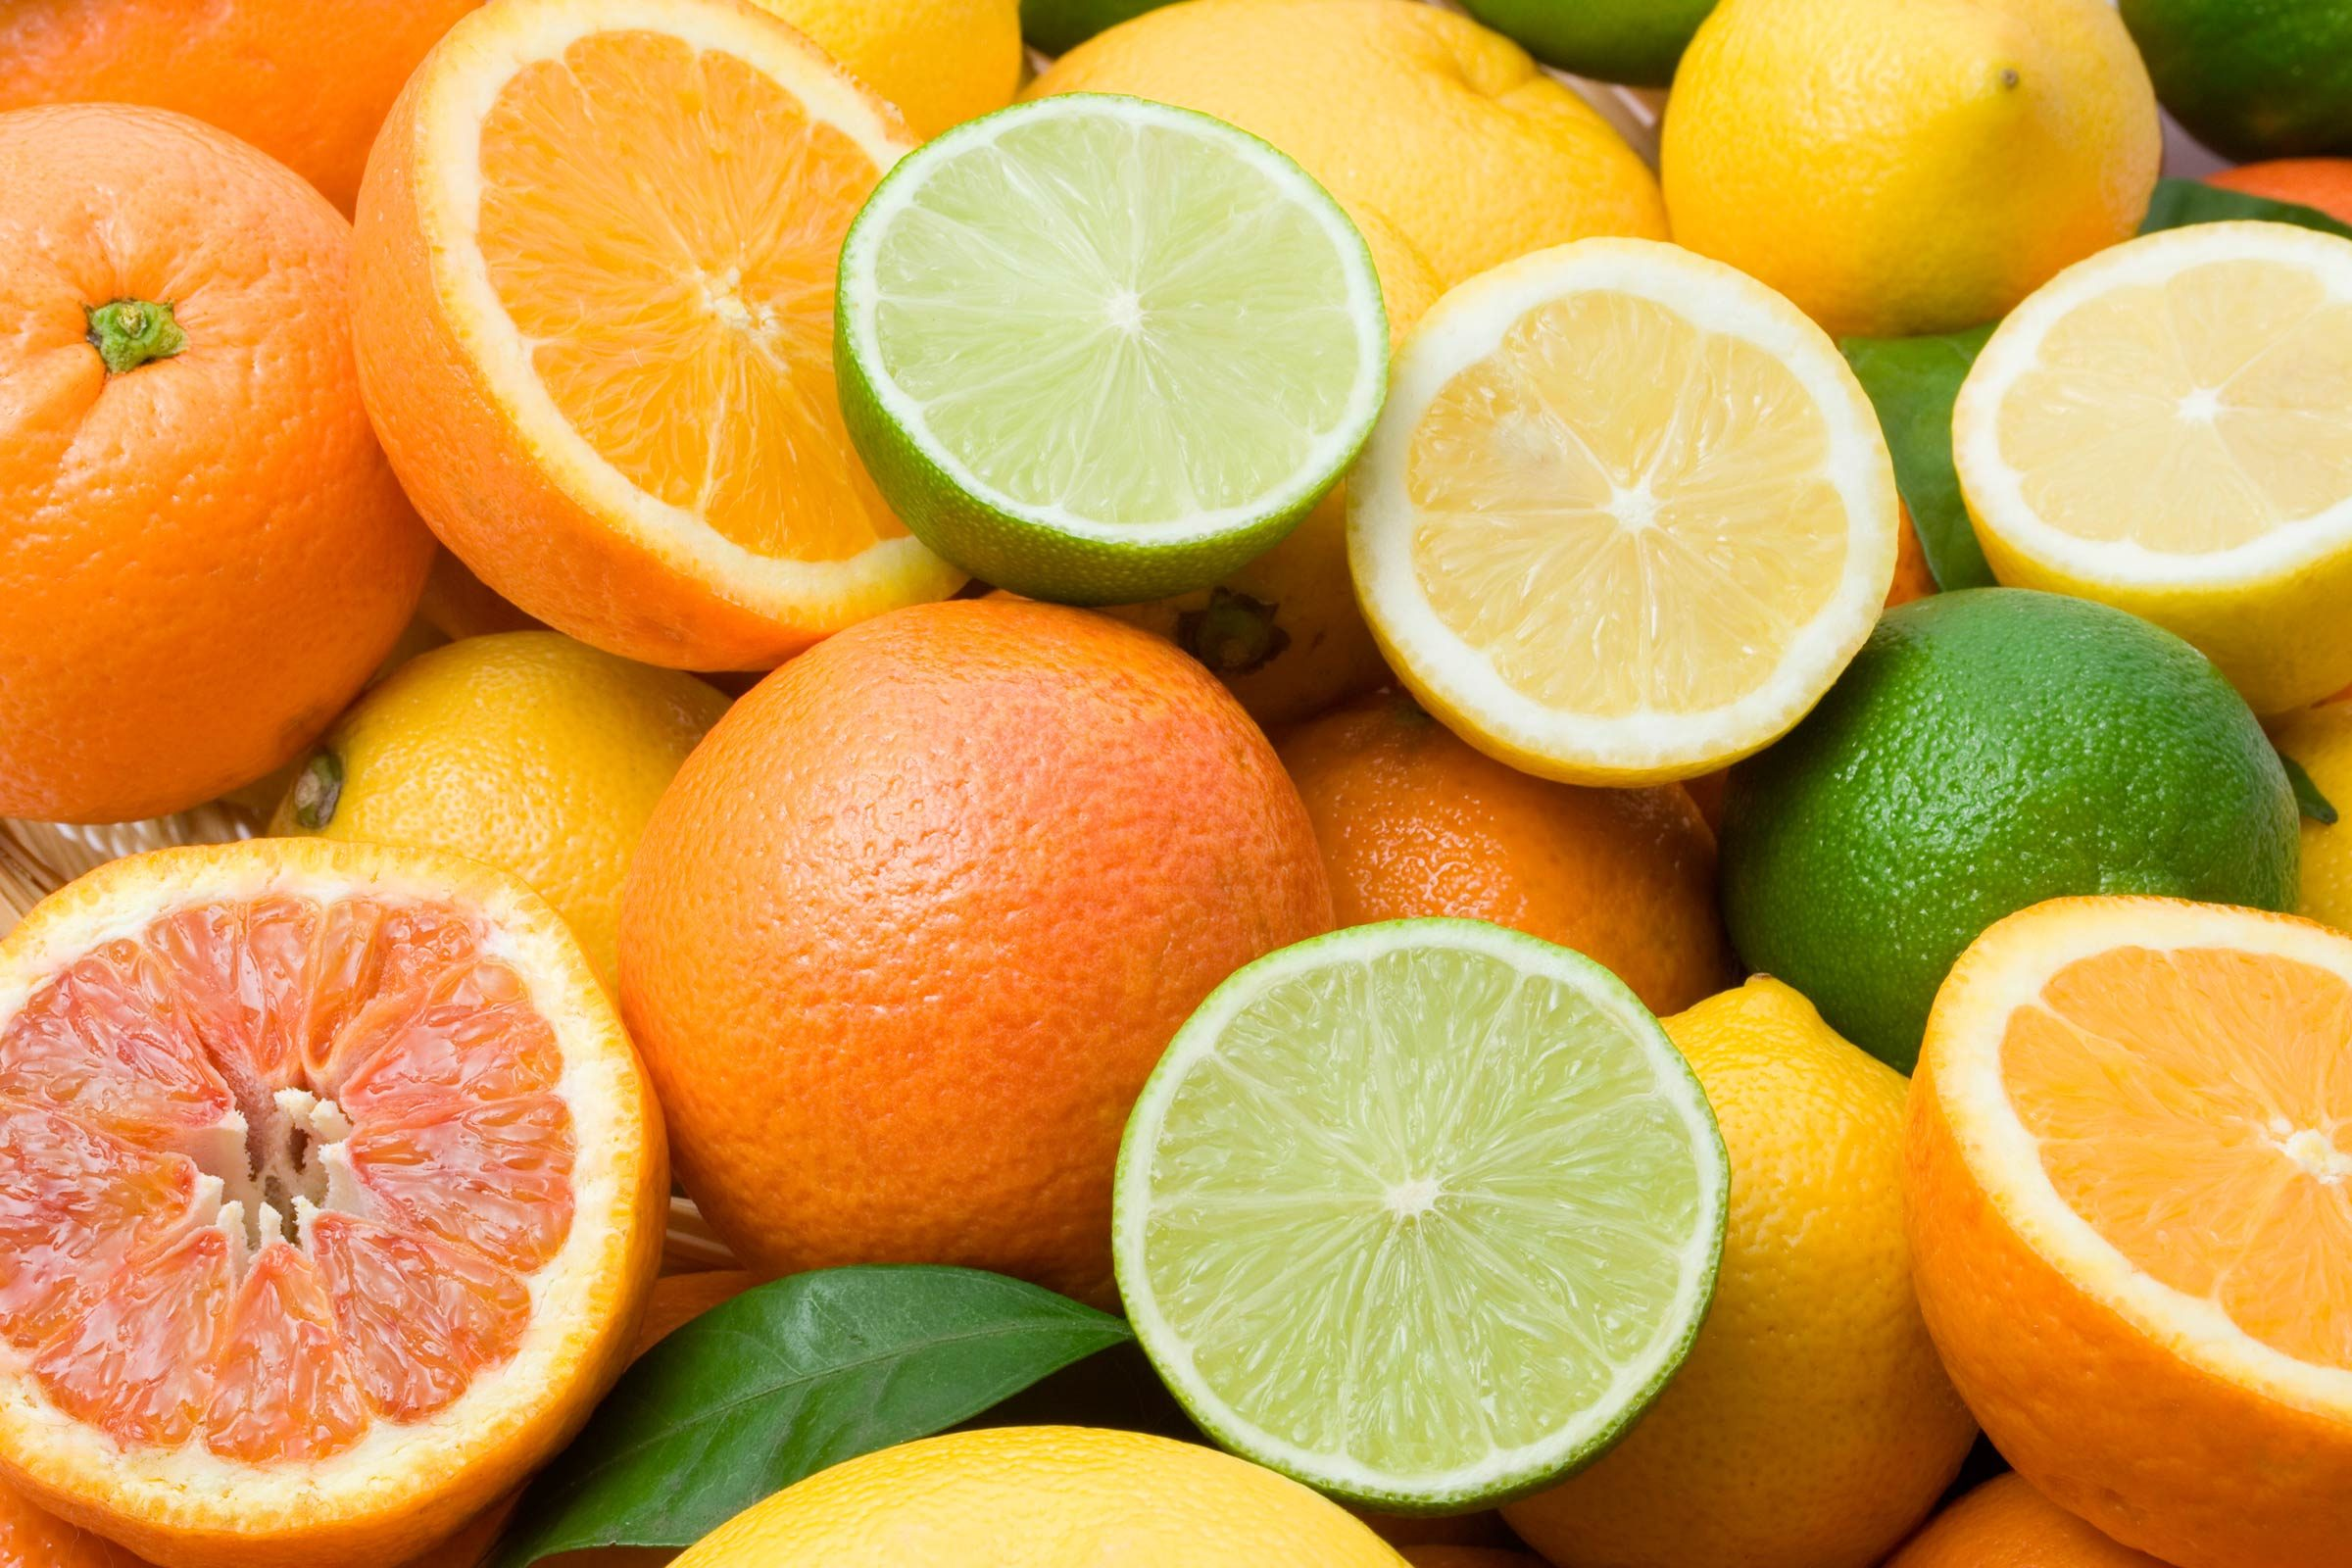 oranges and limes and citrus fruits